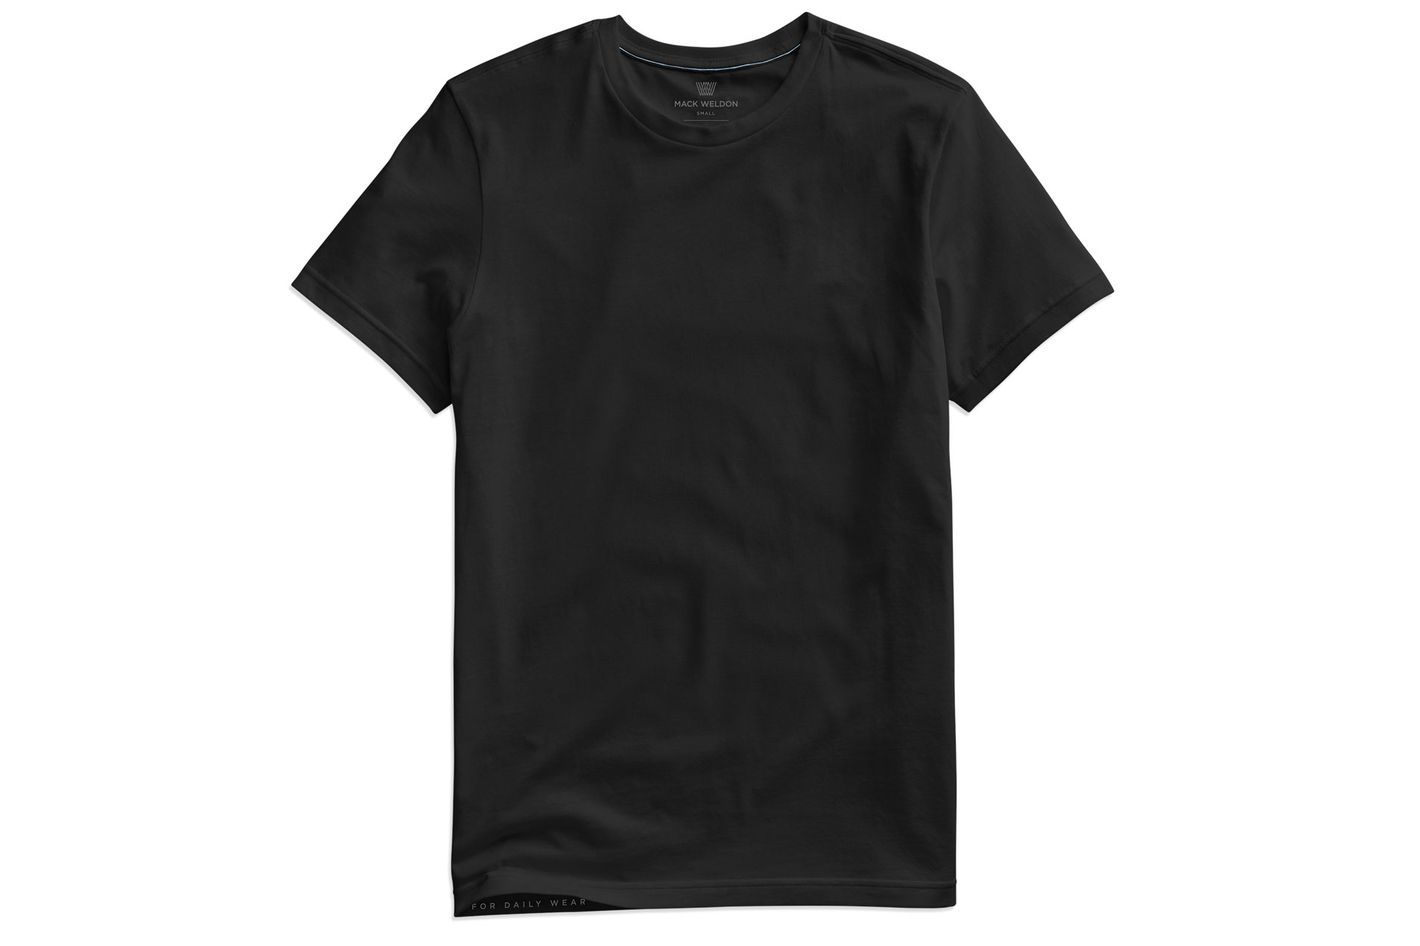 c62a4fc478d5 13 Best Black T-shirts for Men 2018